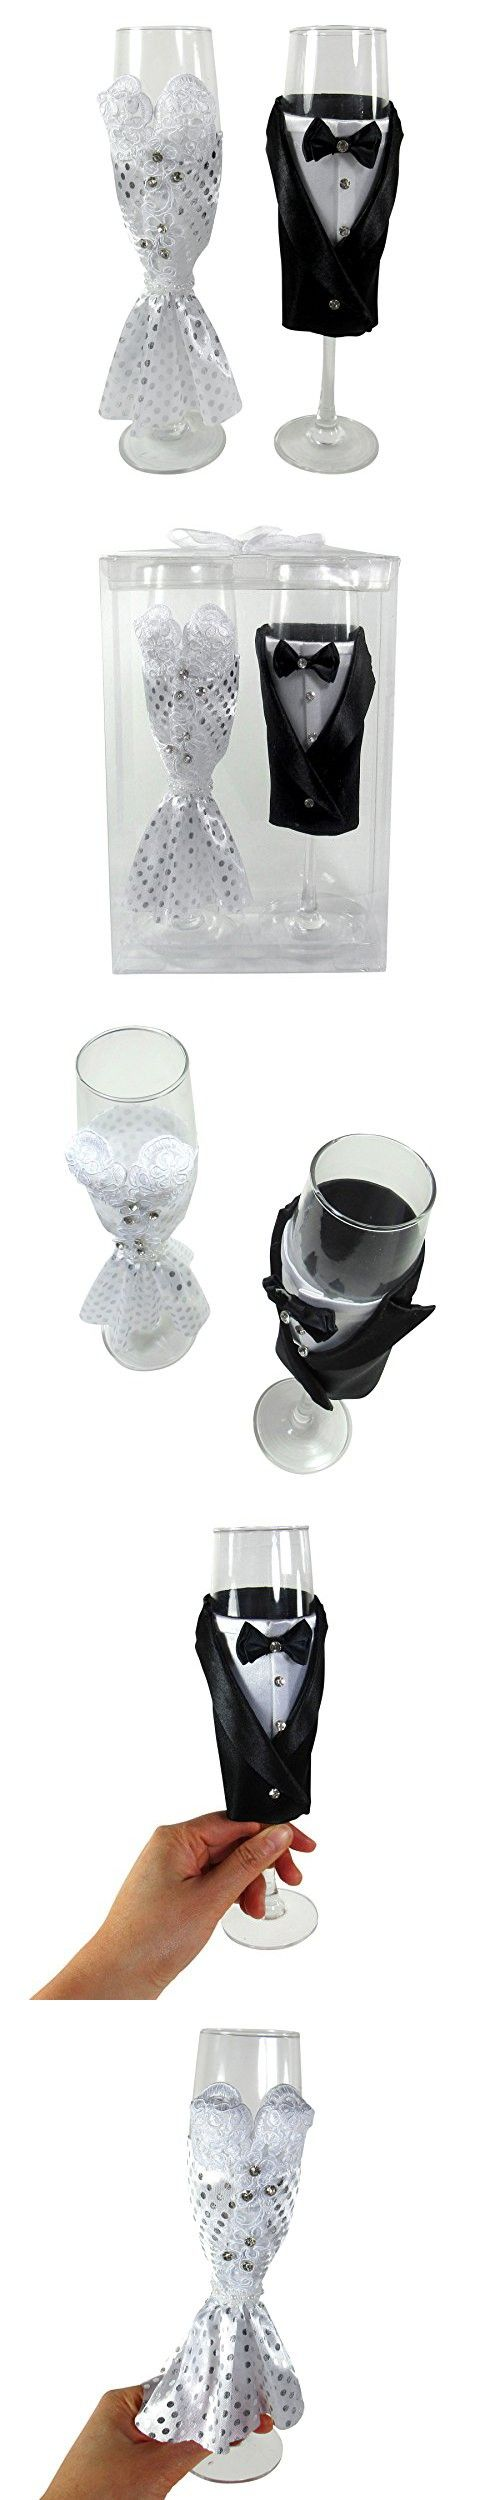 Bride and Groom Wedding Champagne Flute Glasses, Wedding Gift Glass ...